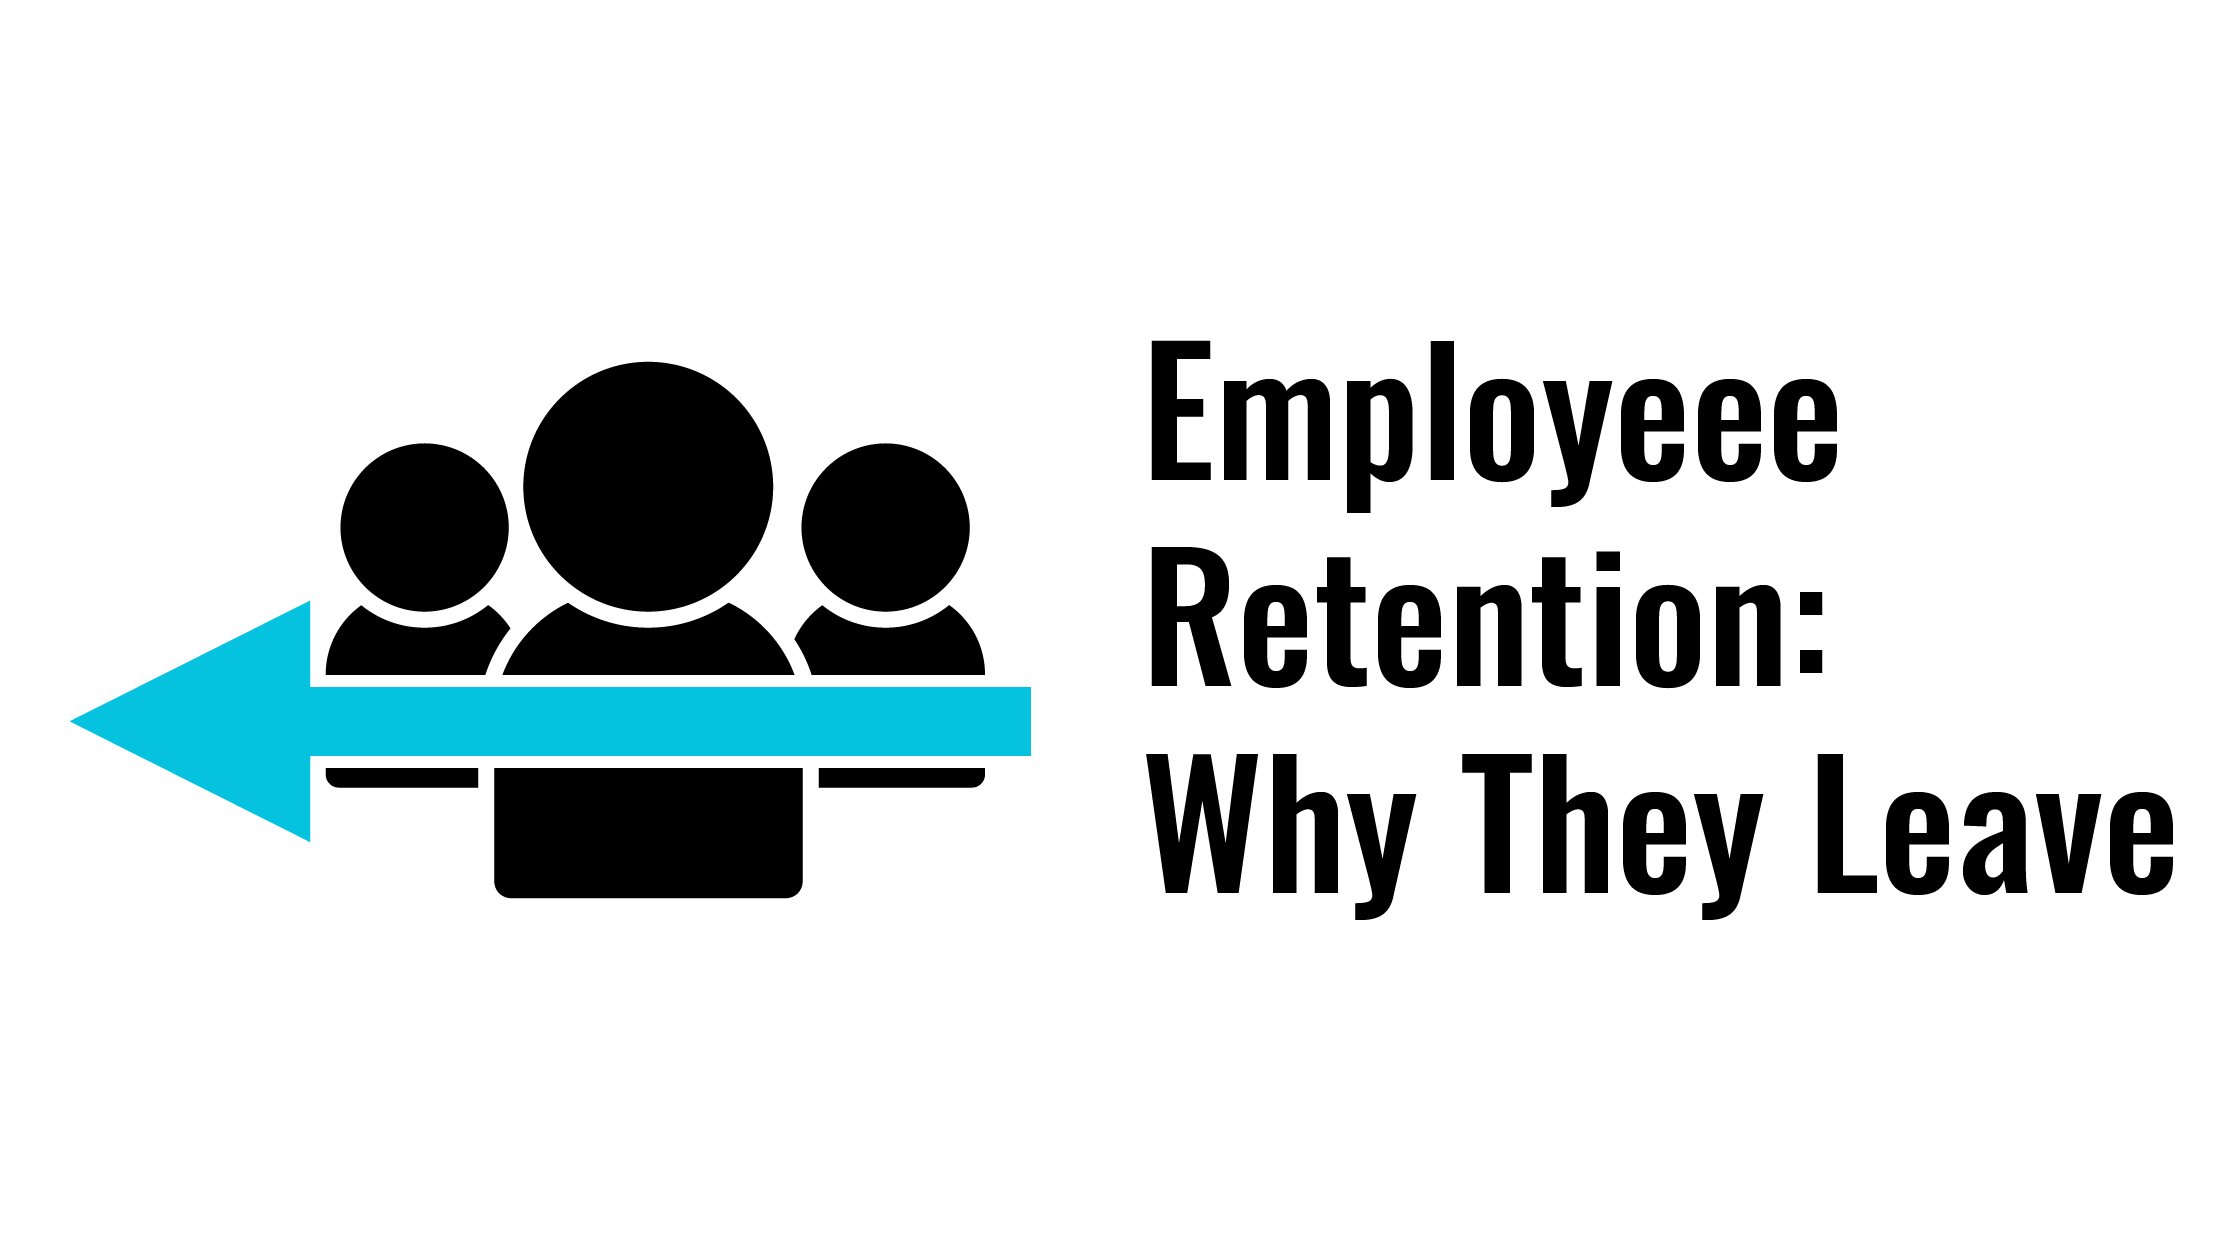 Employee Retention: Why They Leave